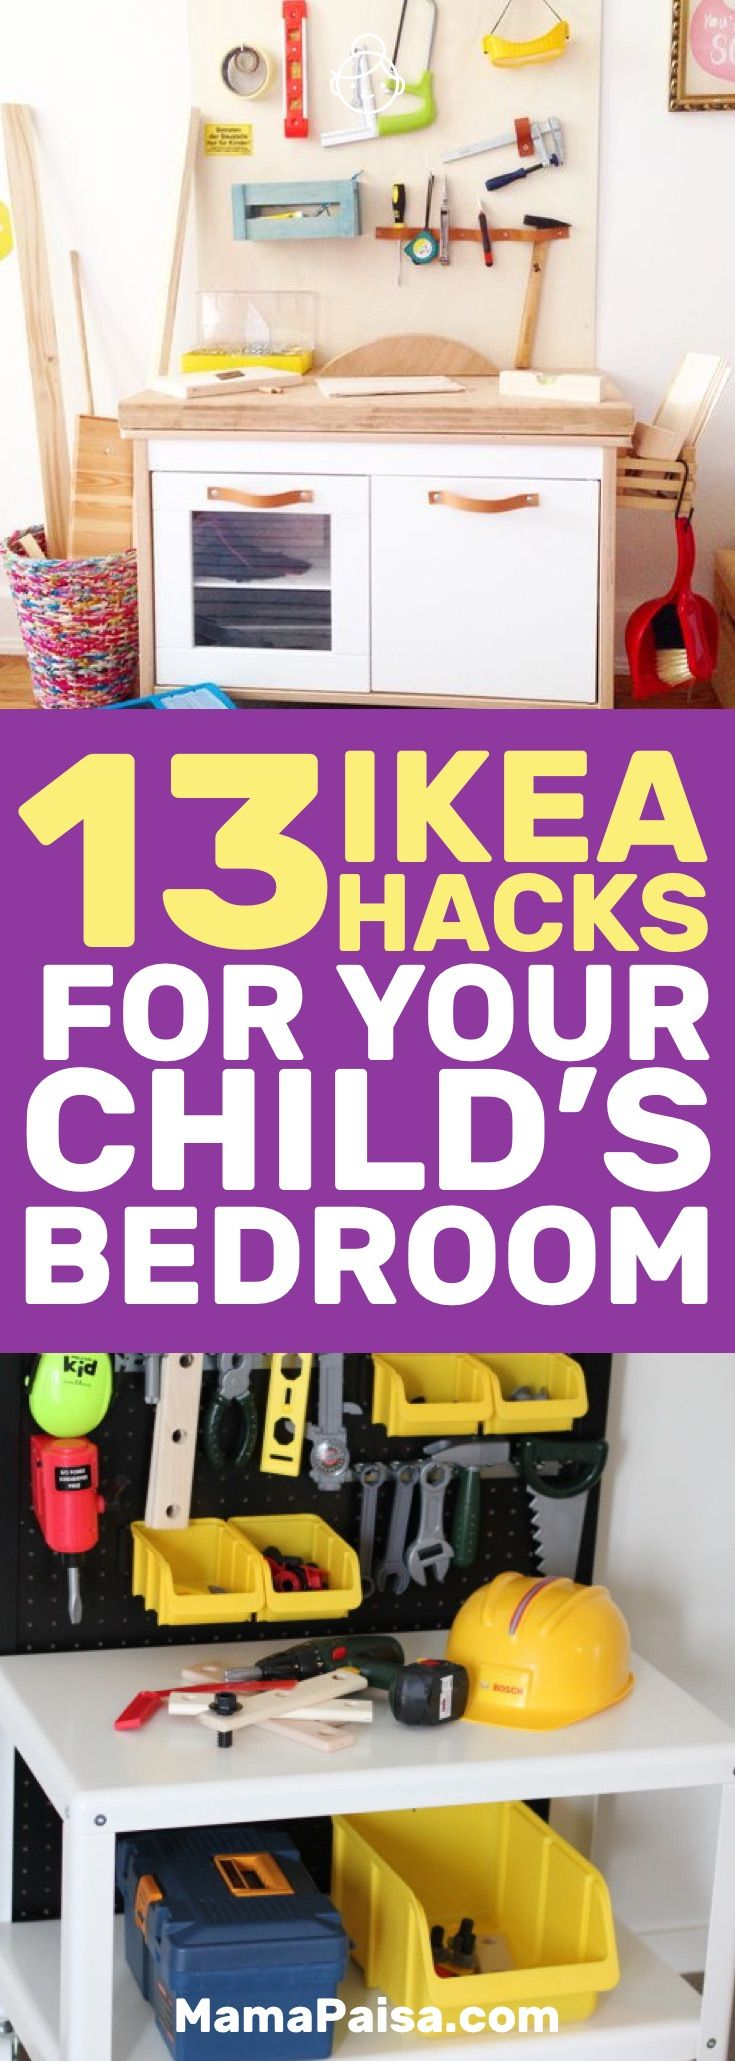 I'm always on the lookout for better ways to organize my kids' stuff. These 13 IKEA hacks for kids hits just the right spot. #DIY #IKEAHacks #HomeDecorIdeas